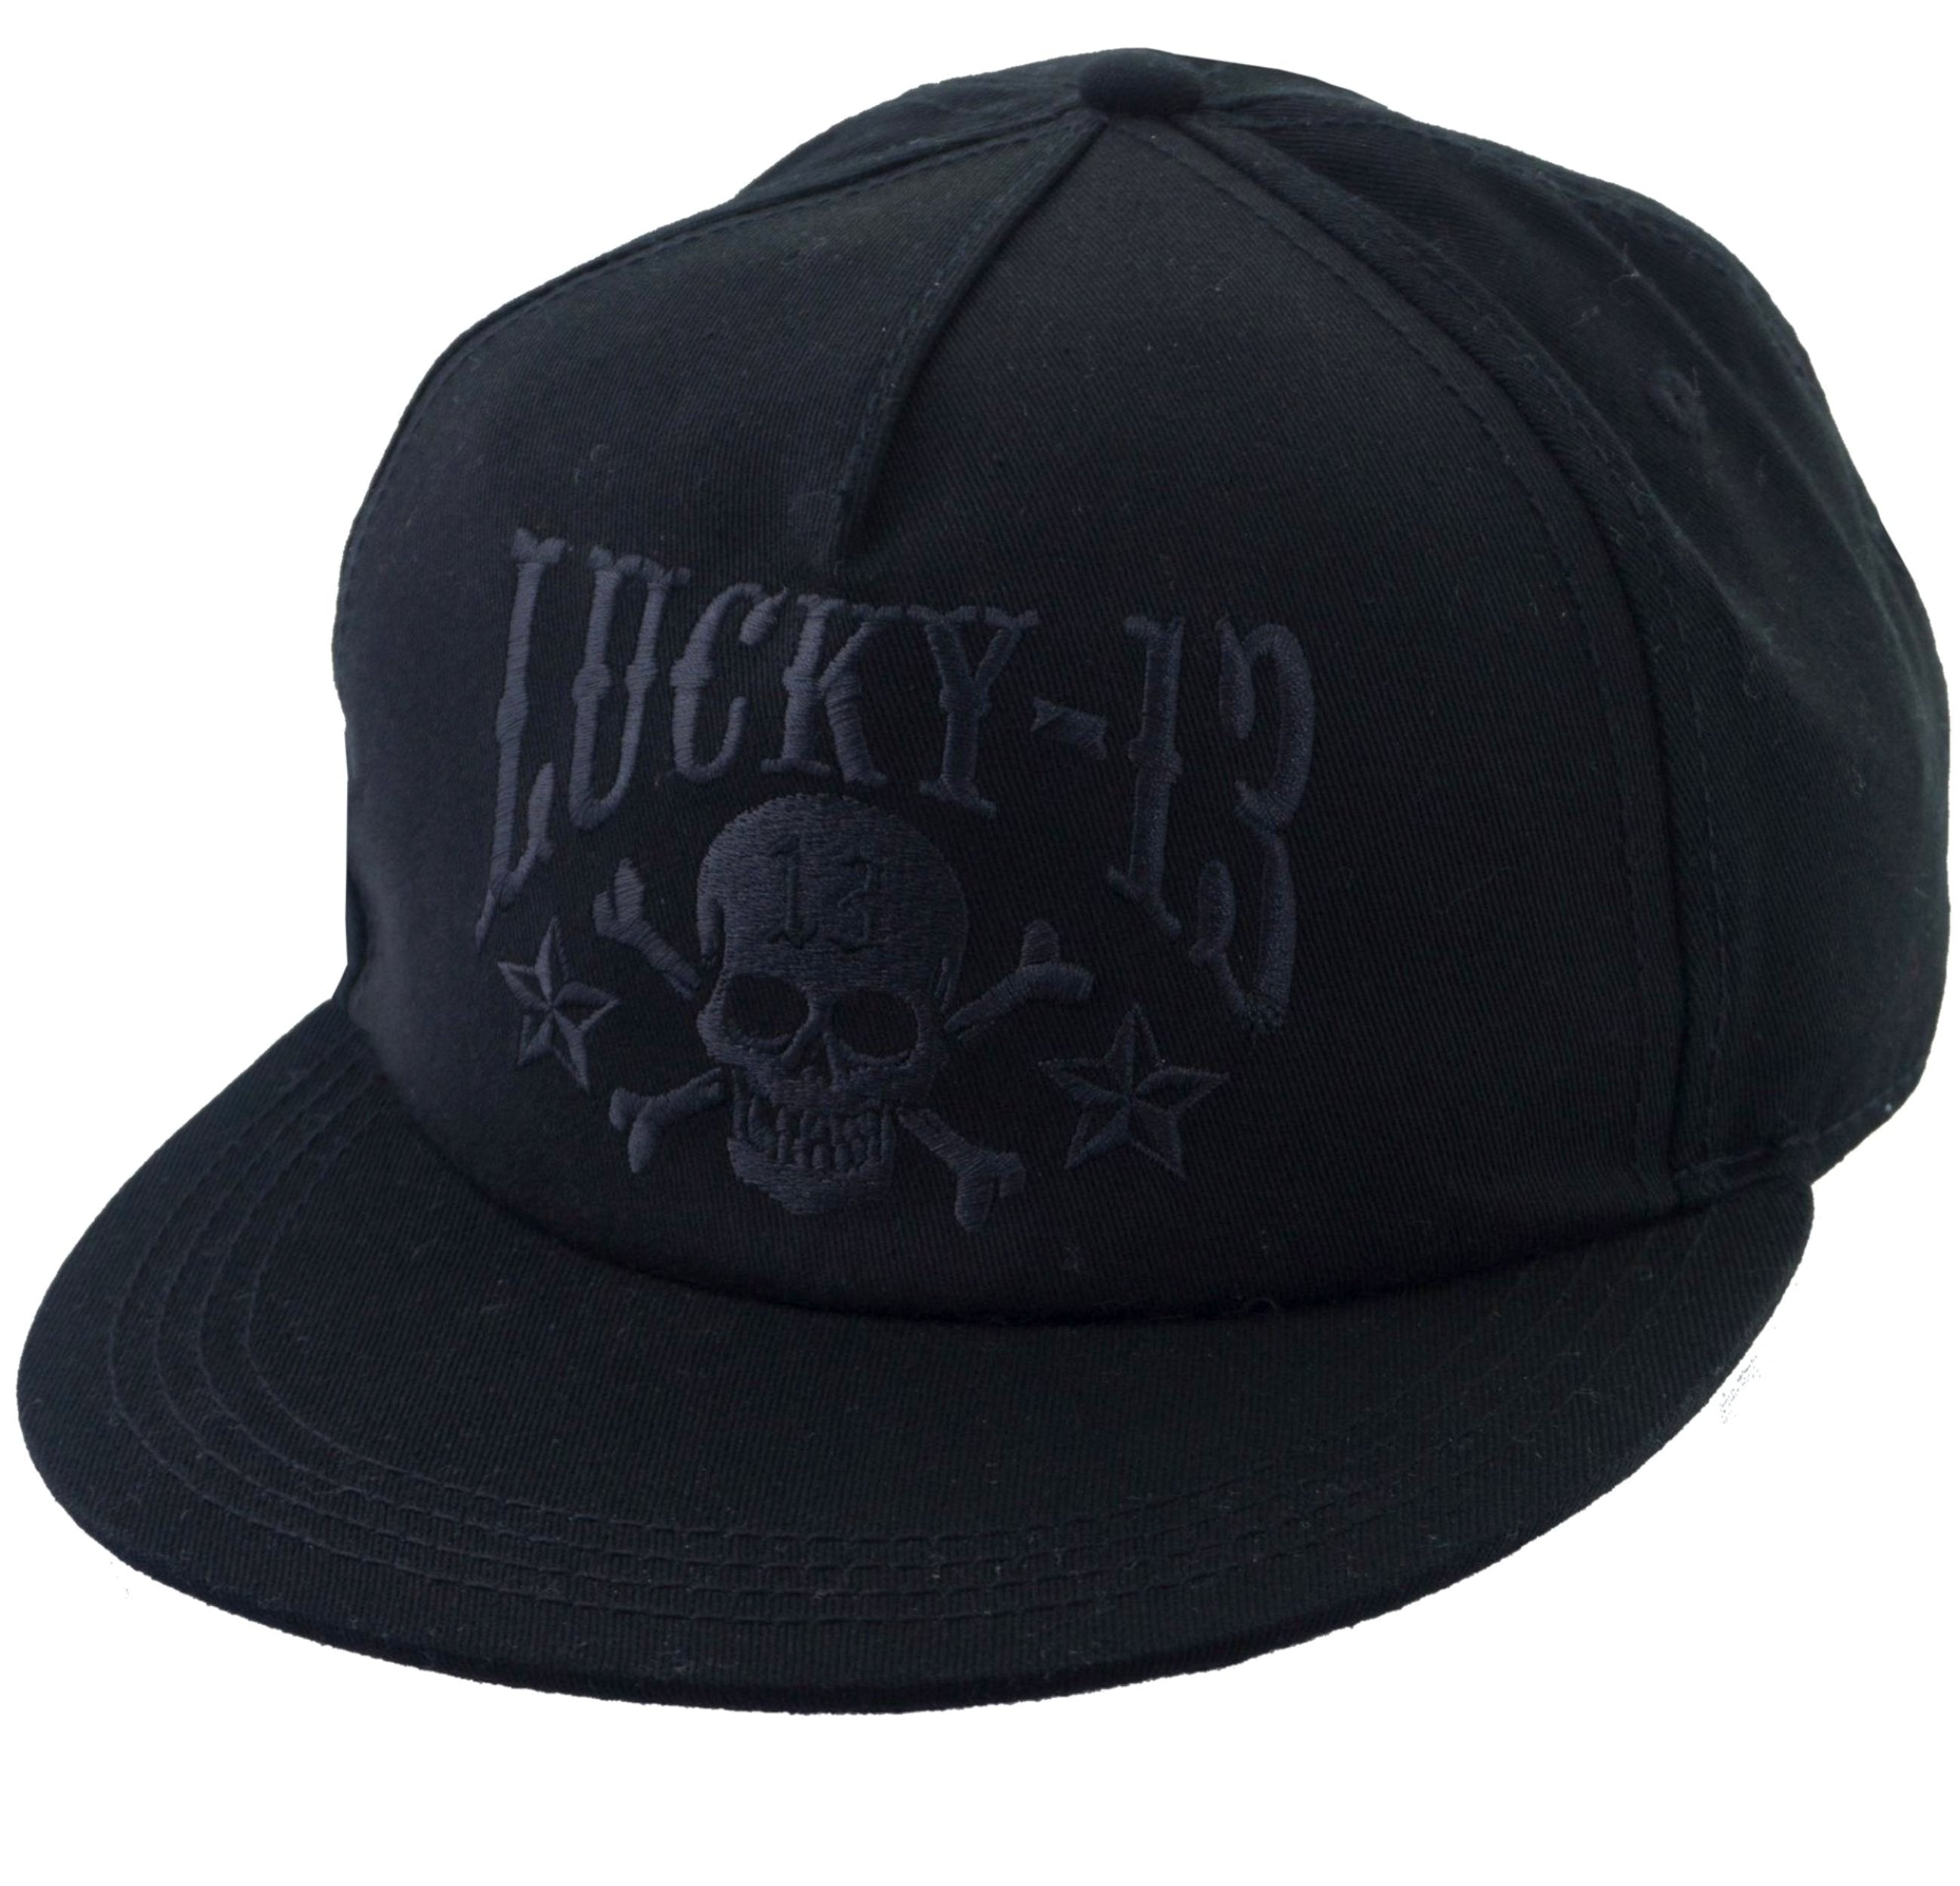 The SKULL STARS 6 Panel Fitted Cap